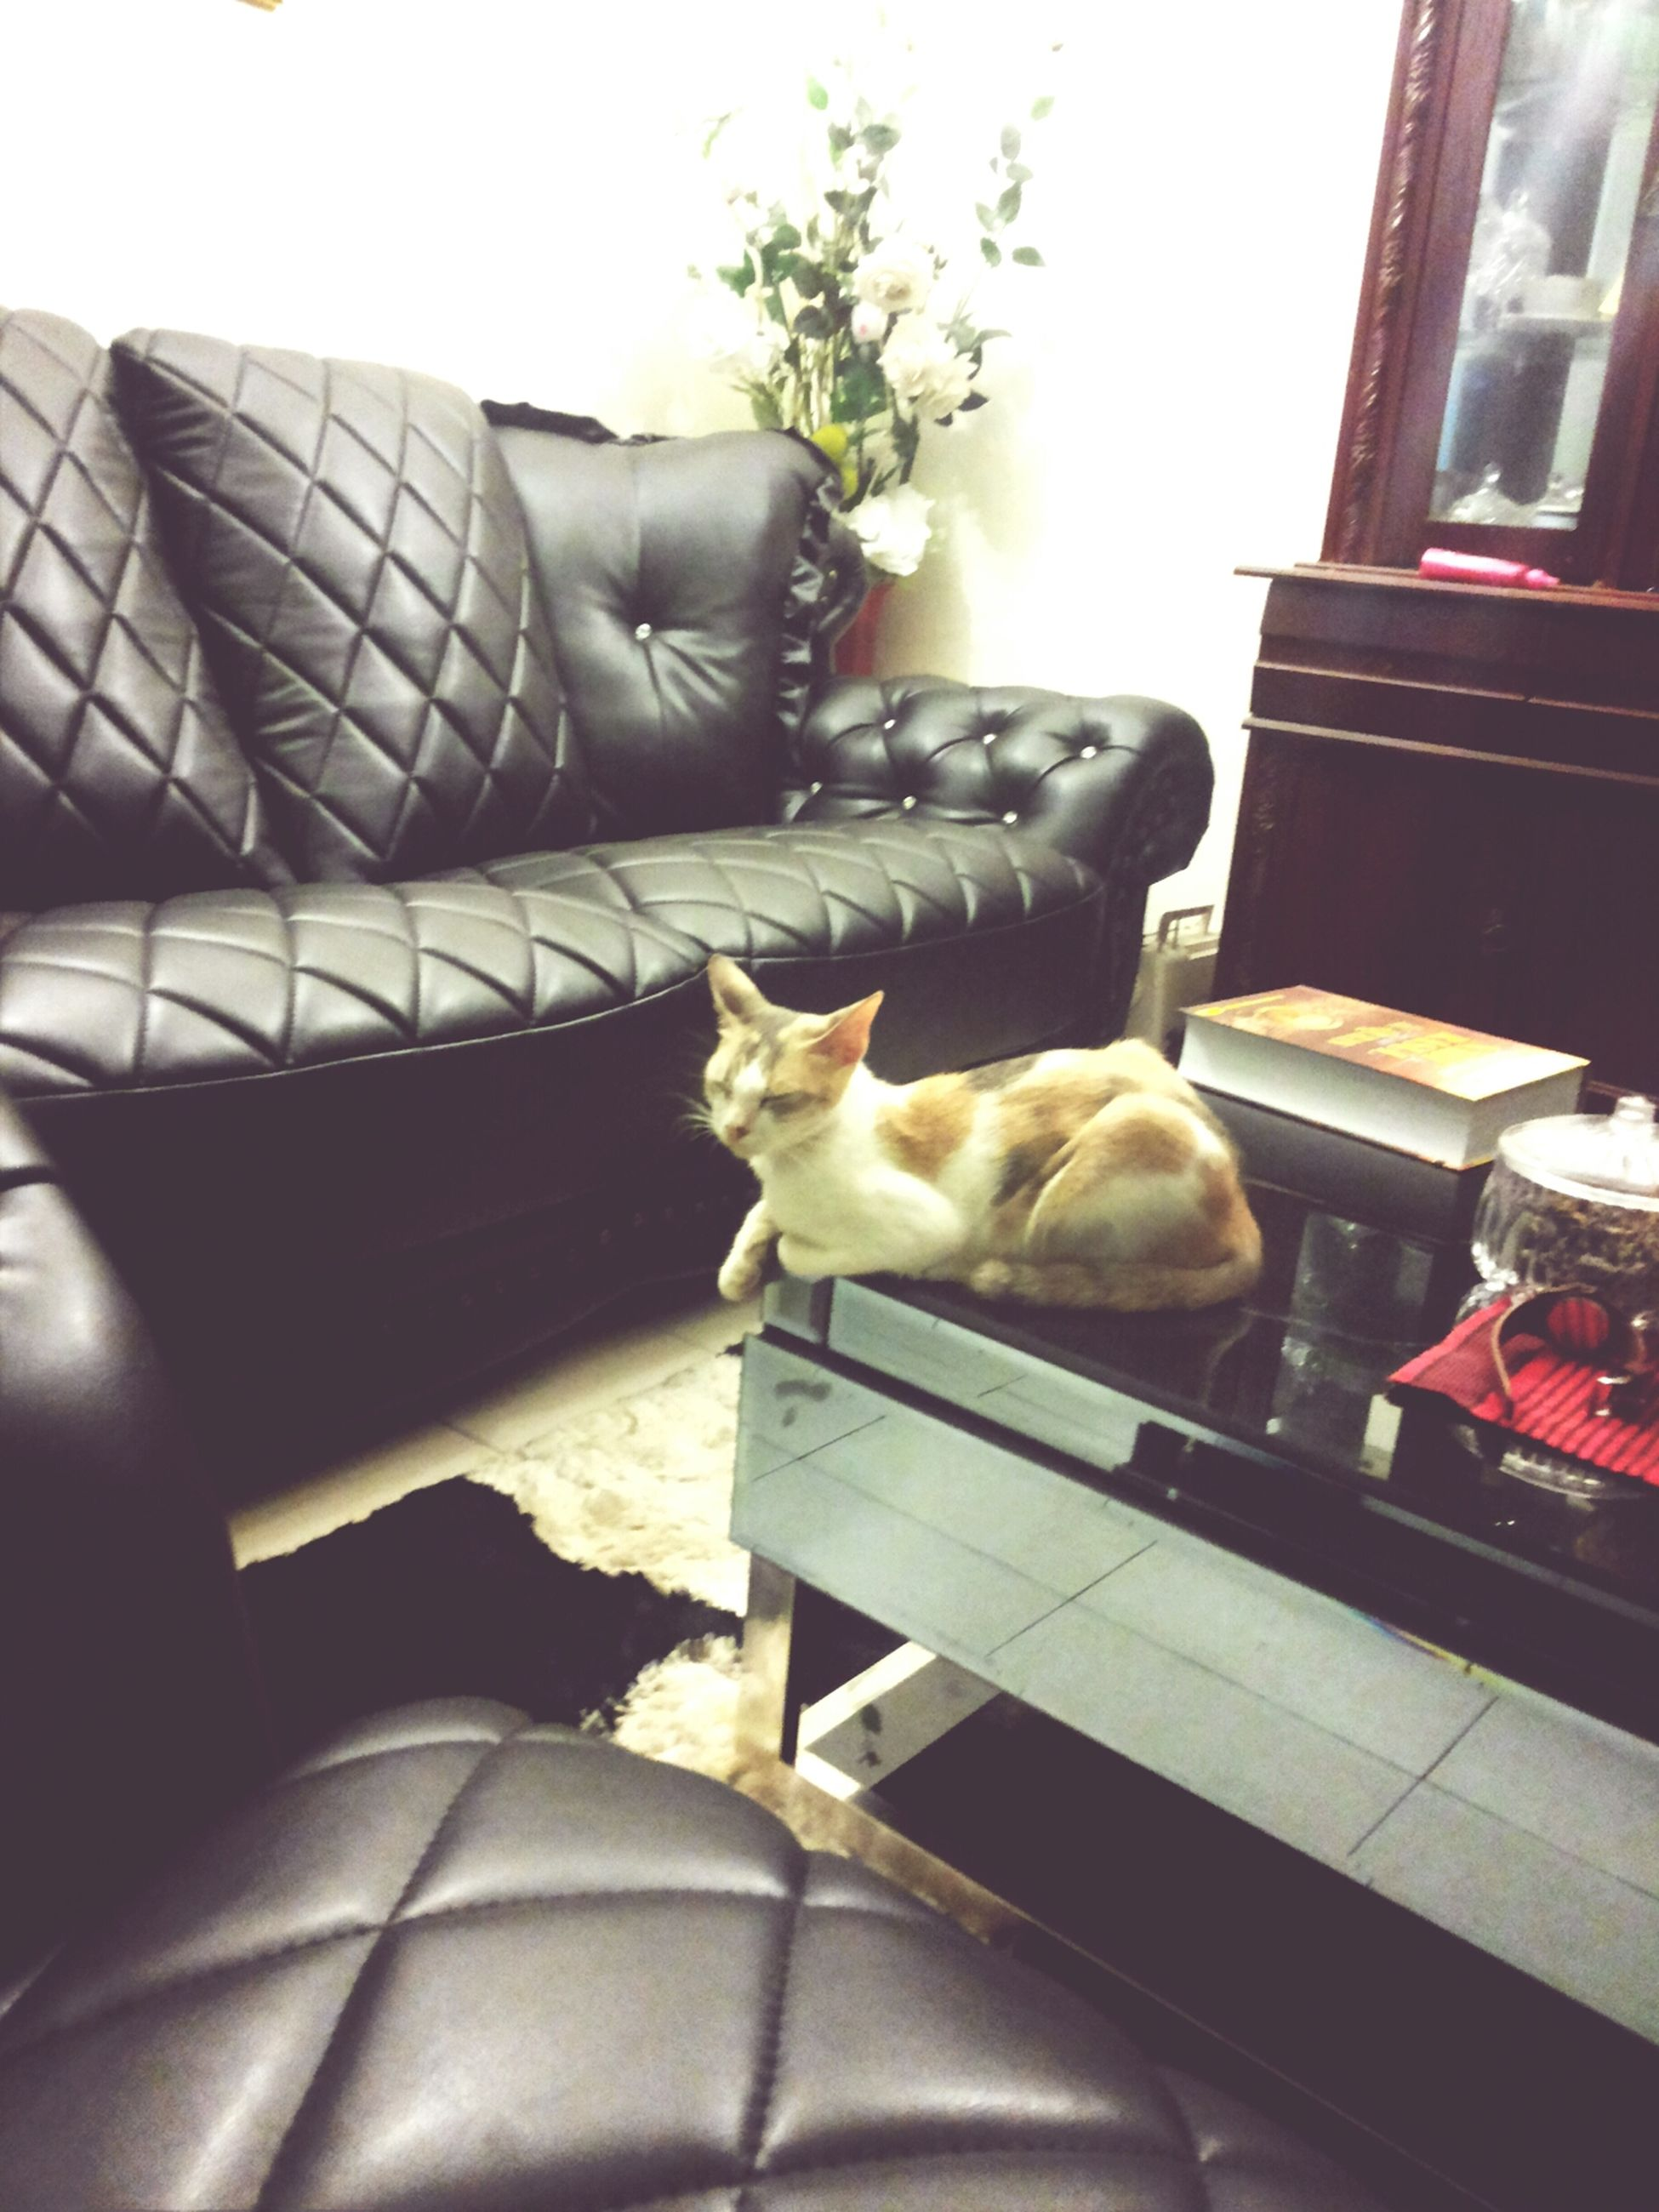 pets, one animal, domestic animals, domestic cat, animal themes, mammal, relaxation, cat, indoors, feline, chair, resting, sitting, built structure, no people, architecture, home interior, house, sofa, lying down